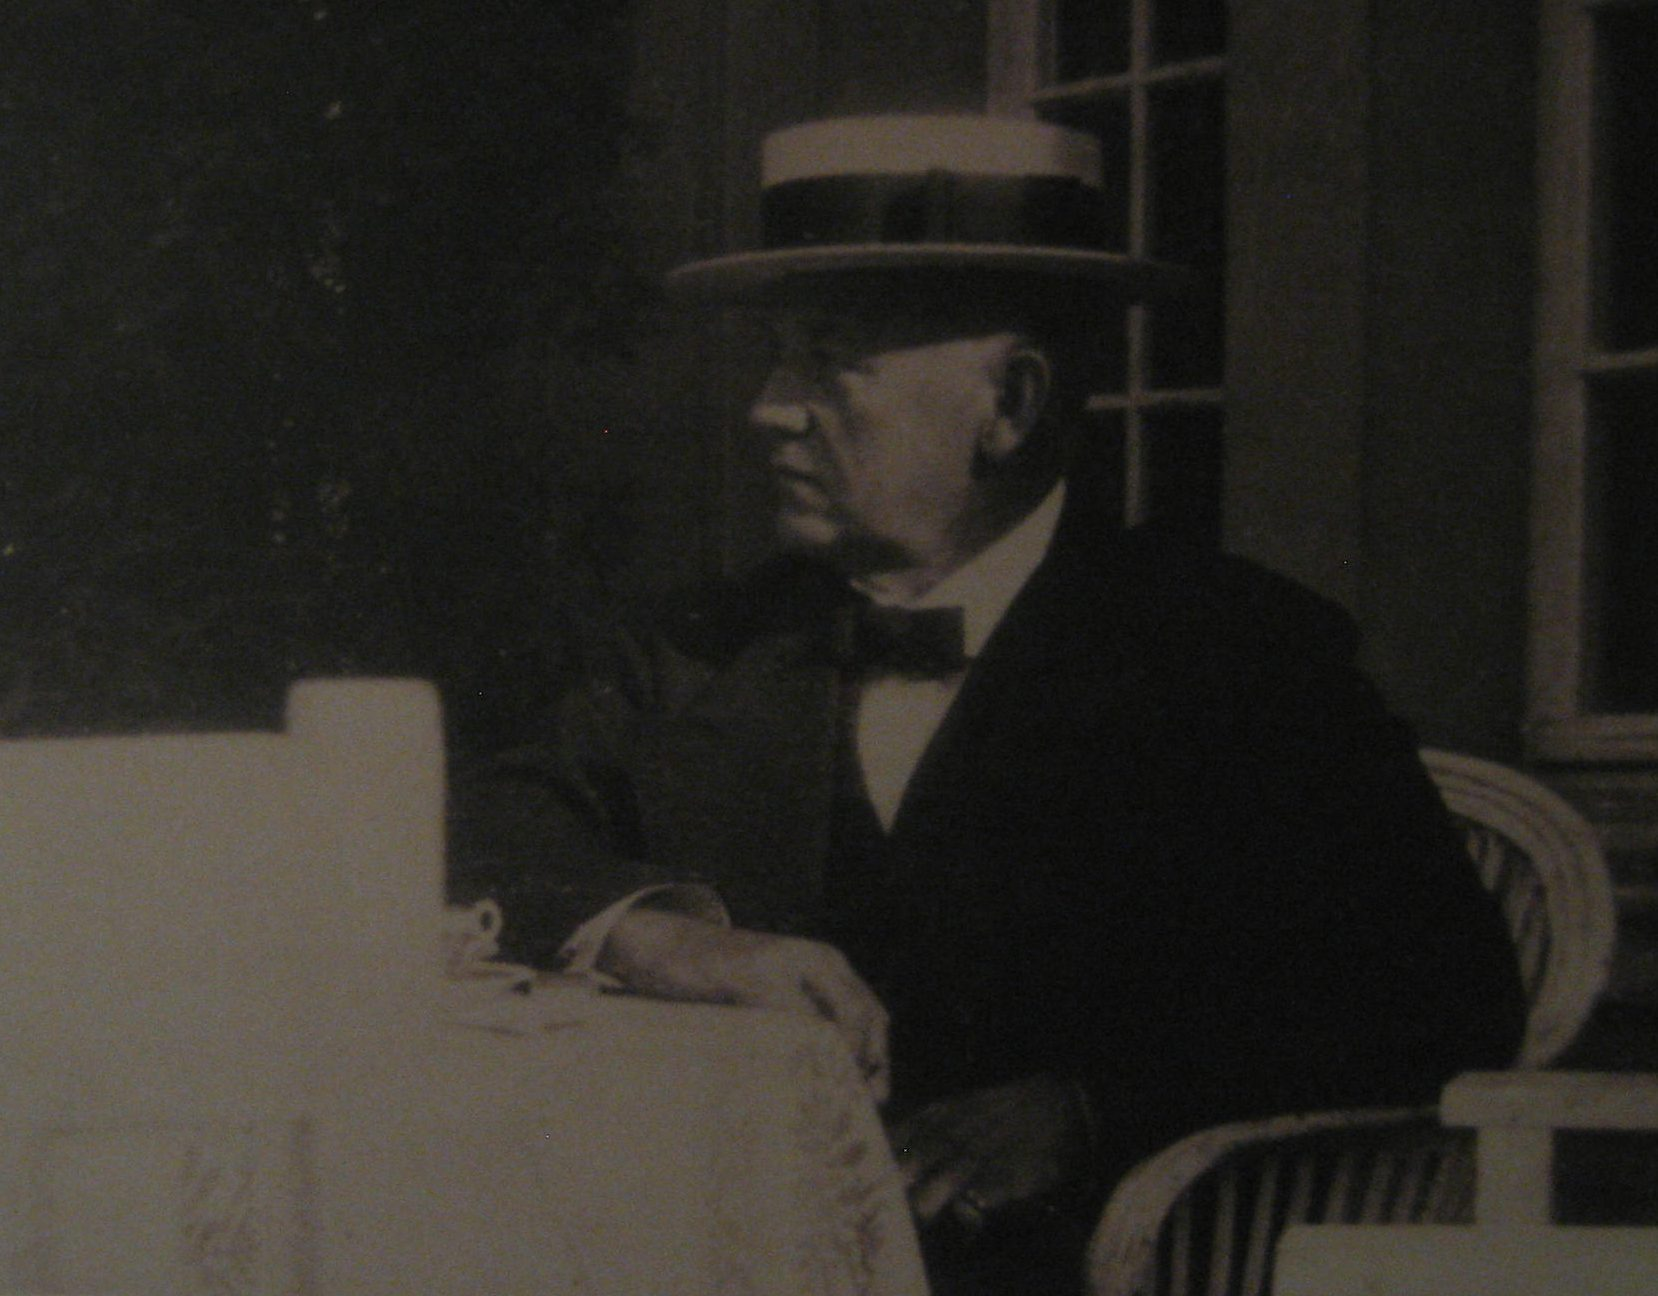 Theodor Fahrner, circa 1910. Detail van foto, Esther Doornbusch, september 2017, CC BY 4.0